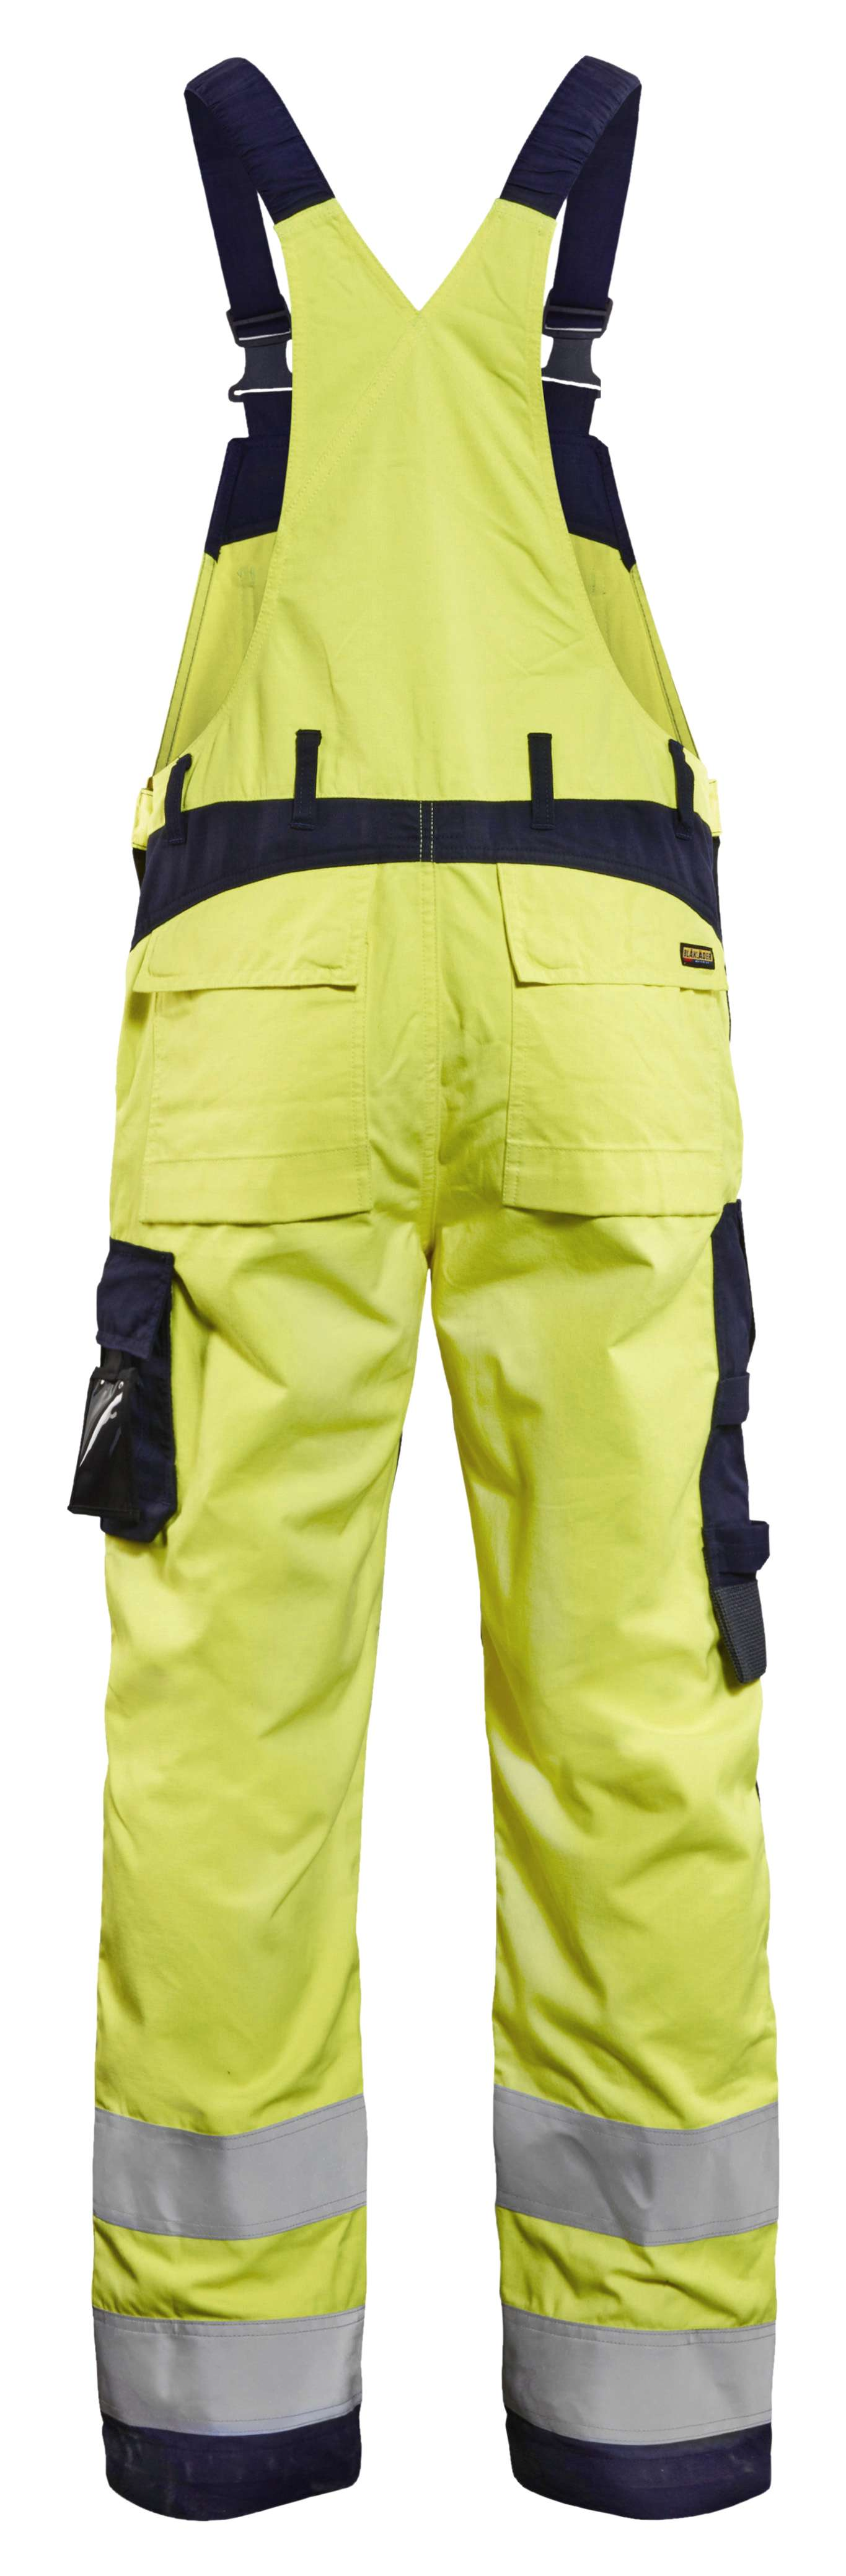 Blaklader Am. Overalls 28891512 Multinorm geel-marineblauw(3389)